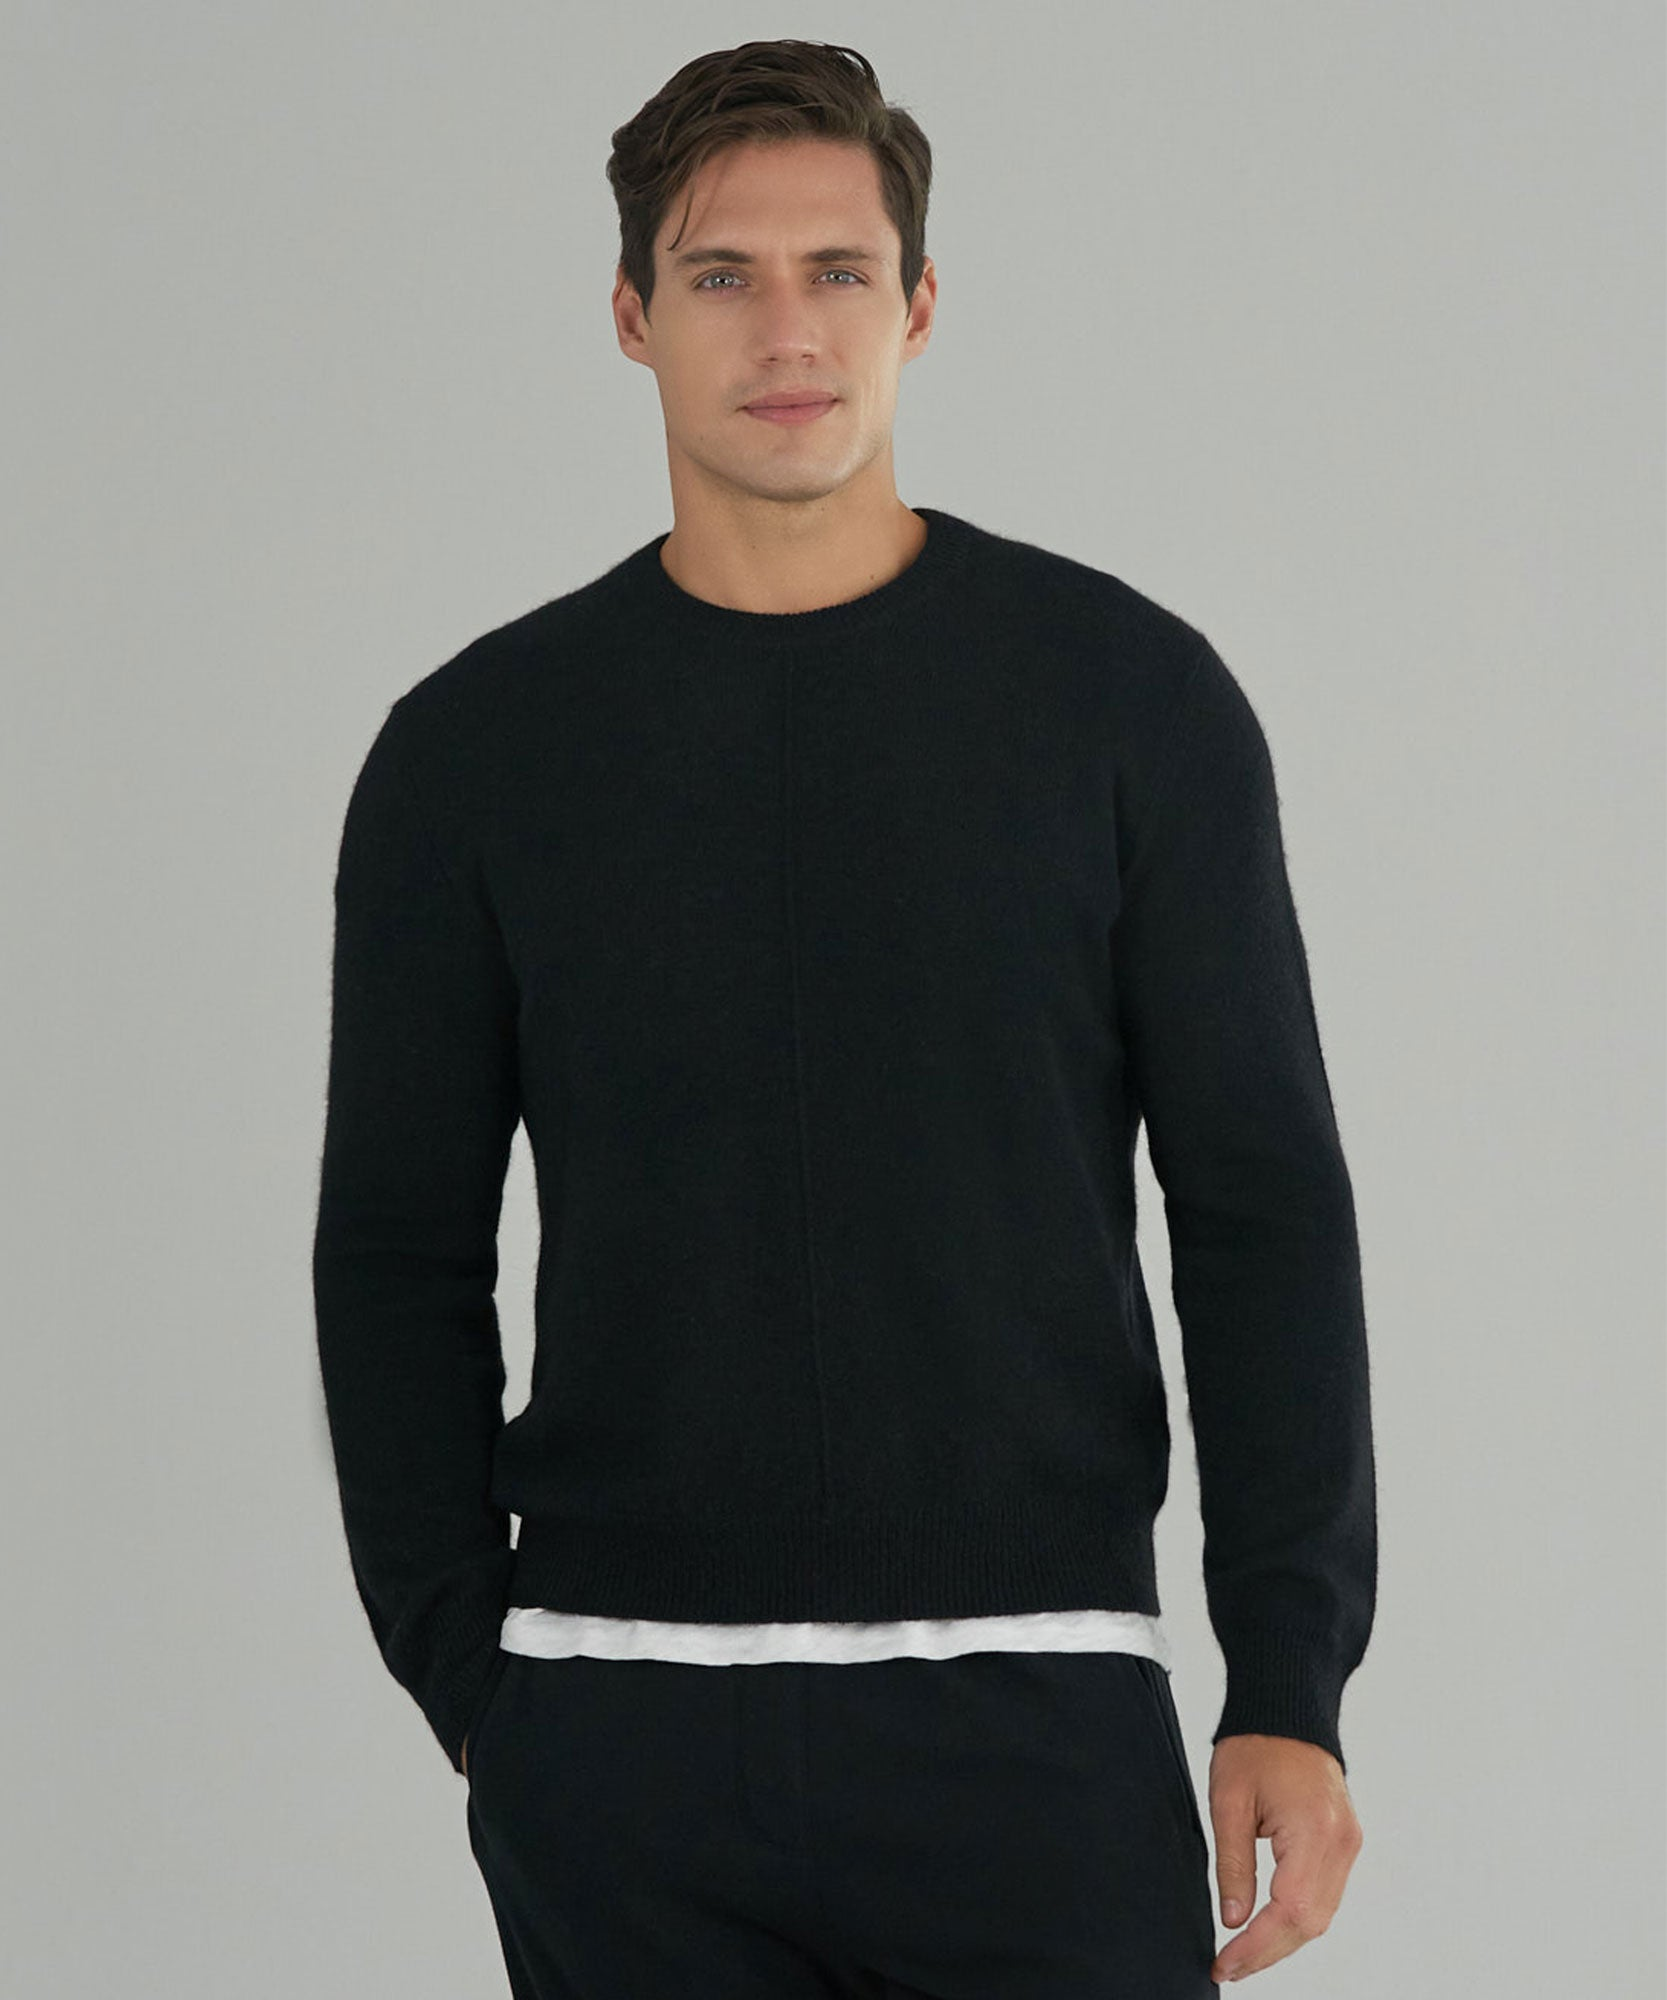 Black Cashmere Exposed Seam Crew Neck Sweater - Men's Cashmere Sweater by ATM Anthony Thomas Melillo